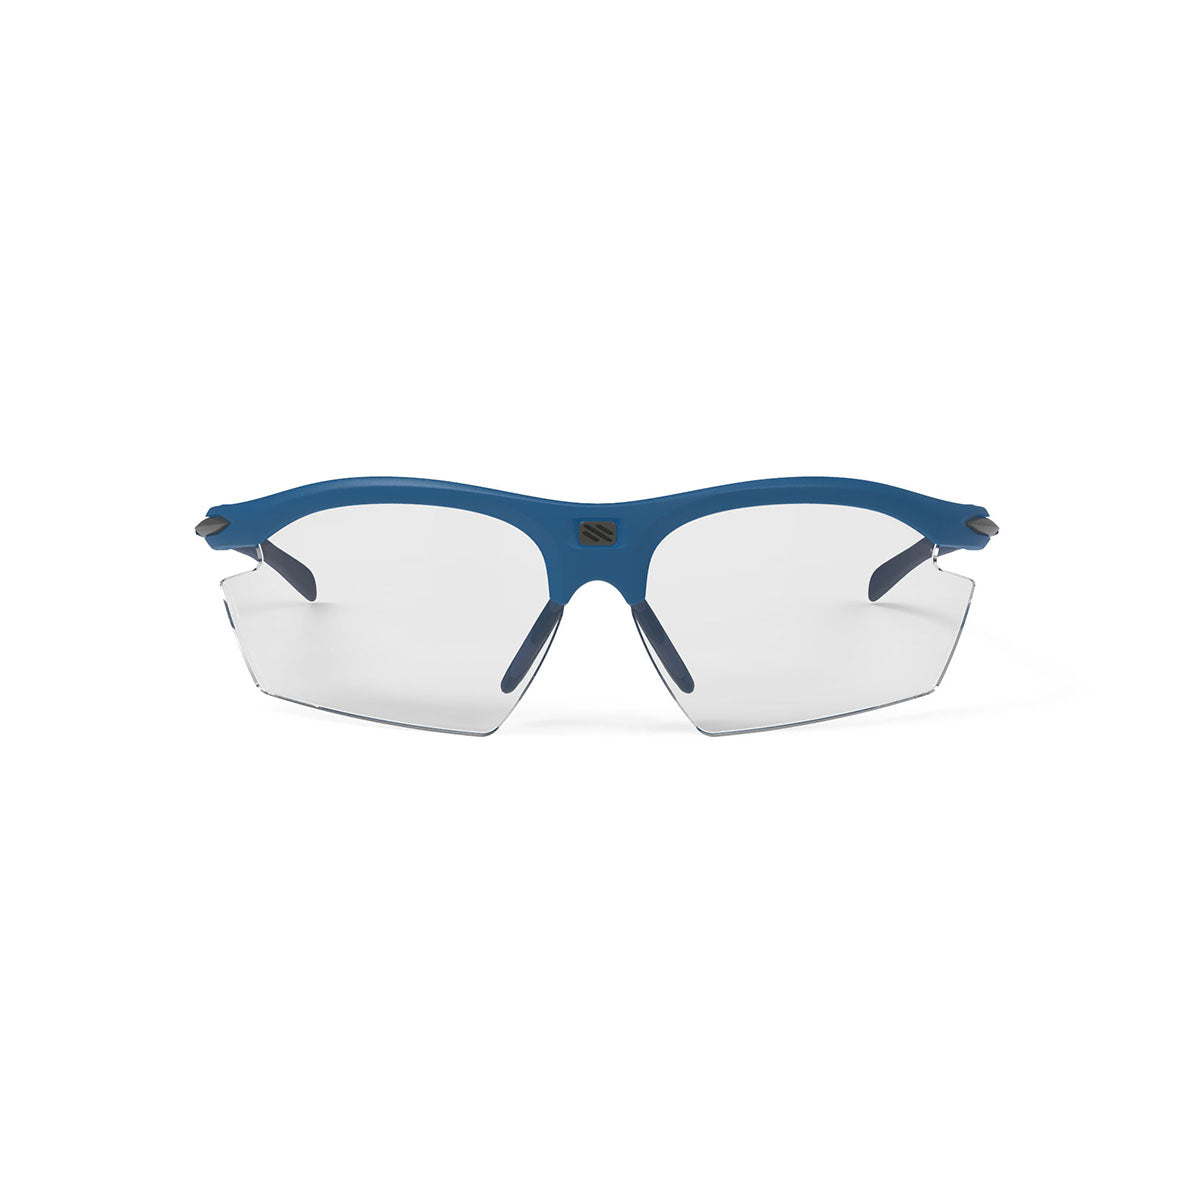 Rudy Project - Rydon - frame color: Pacific Blue Matte - lens color: ImpactX-2 Photochromic Clear to Black - photo angle: Front View Variant Hover Image